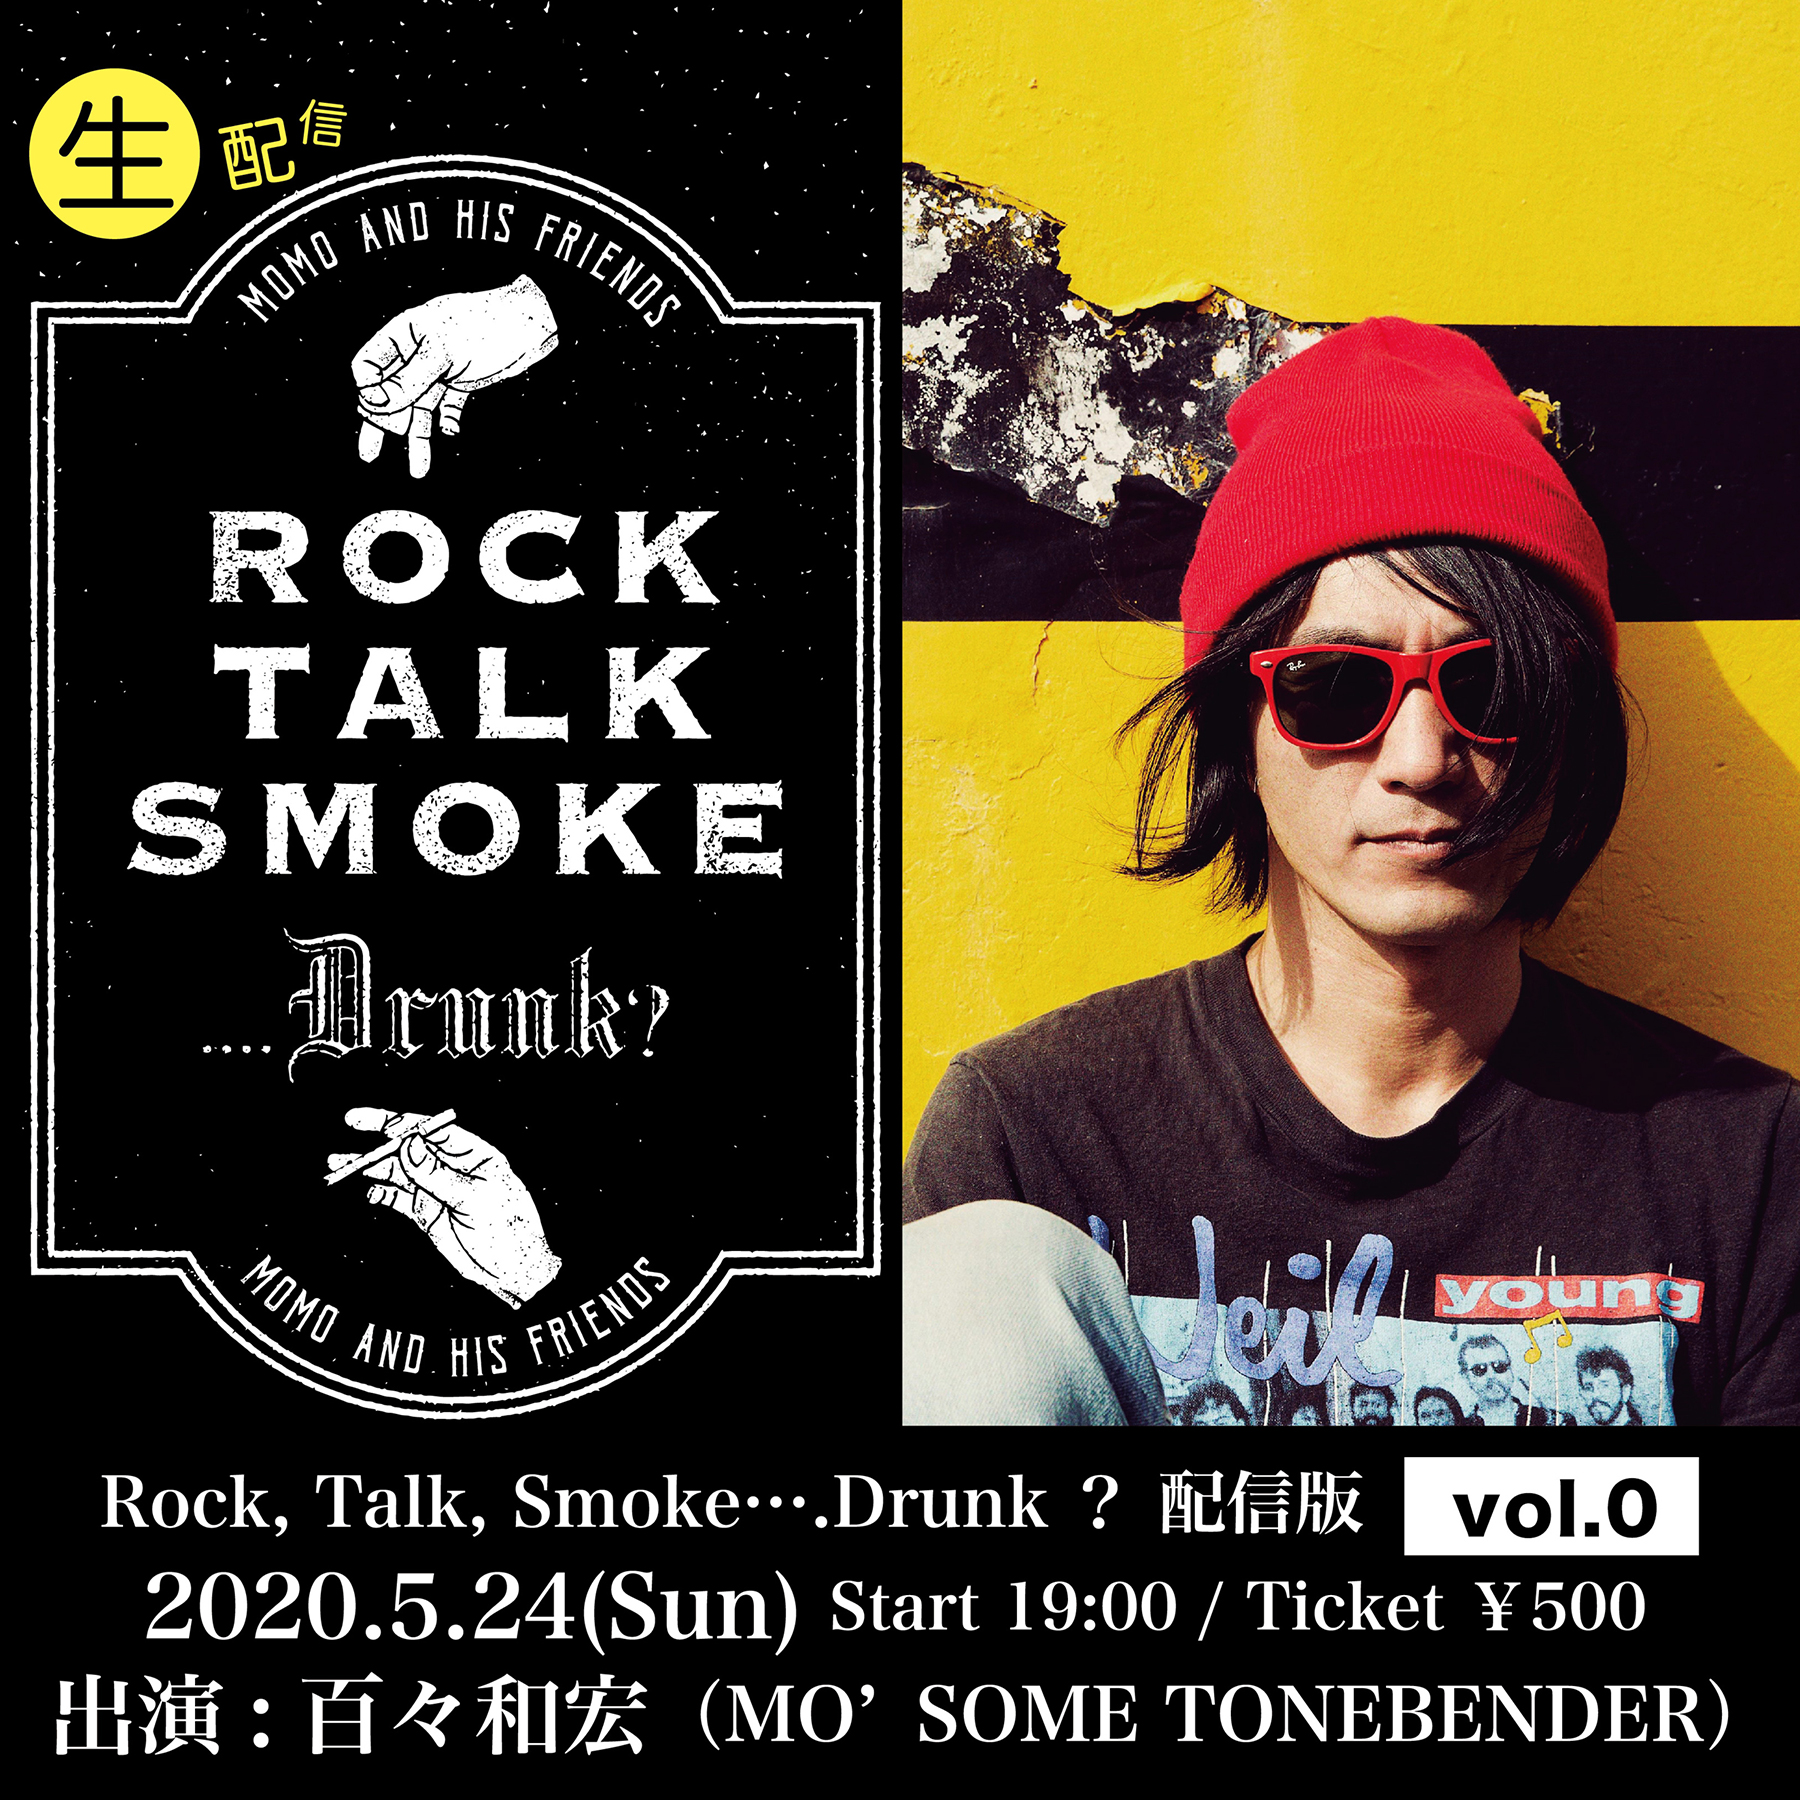 『Rock, Talk, Smoke….Drunk? 配信版 vol.0』